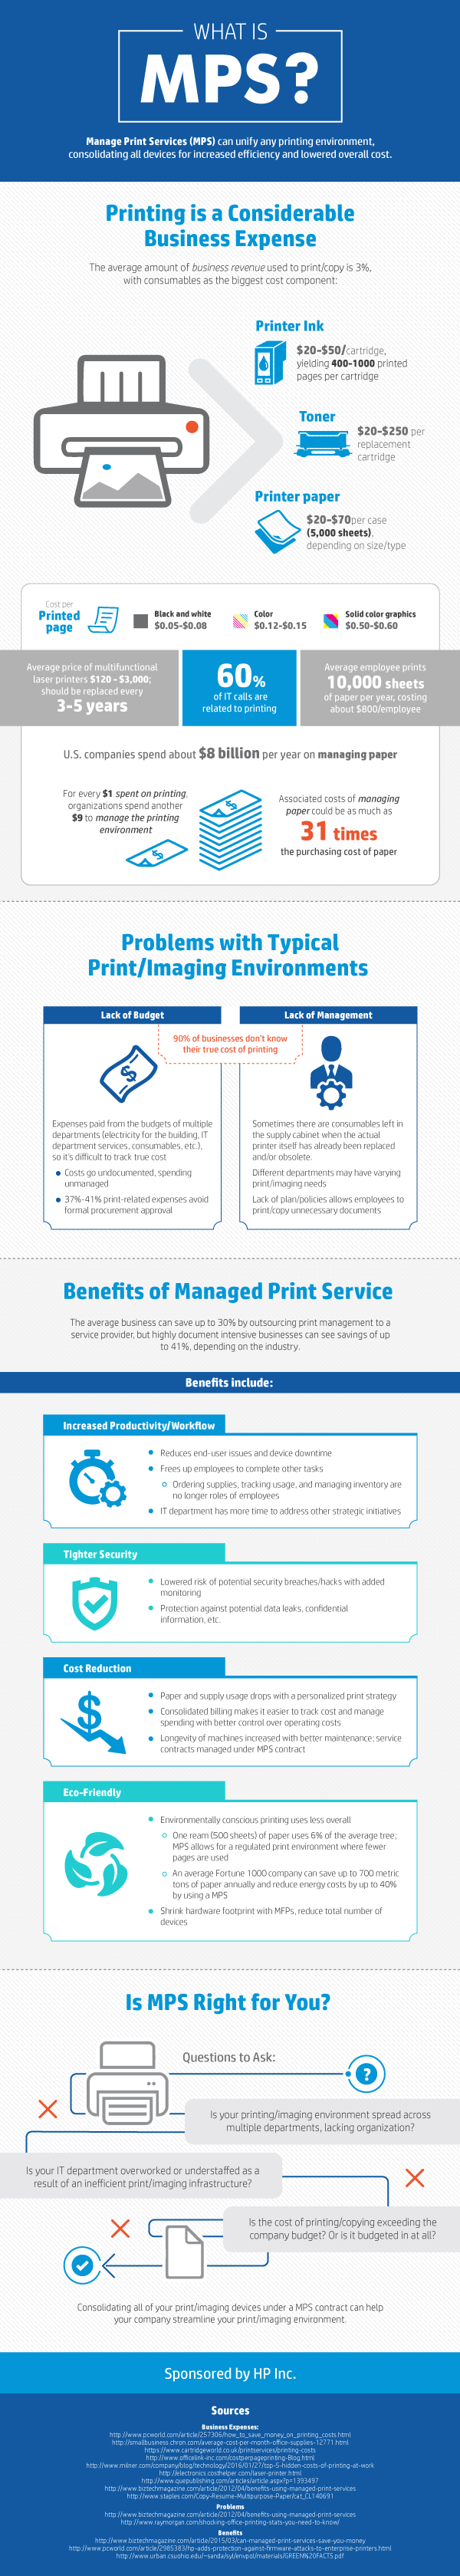 HP_MPS_INFOGRAPHIC